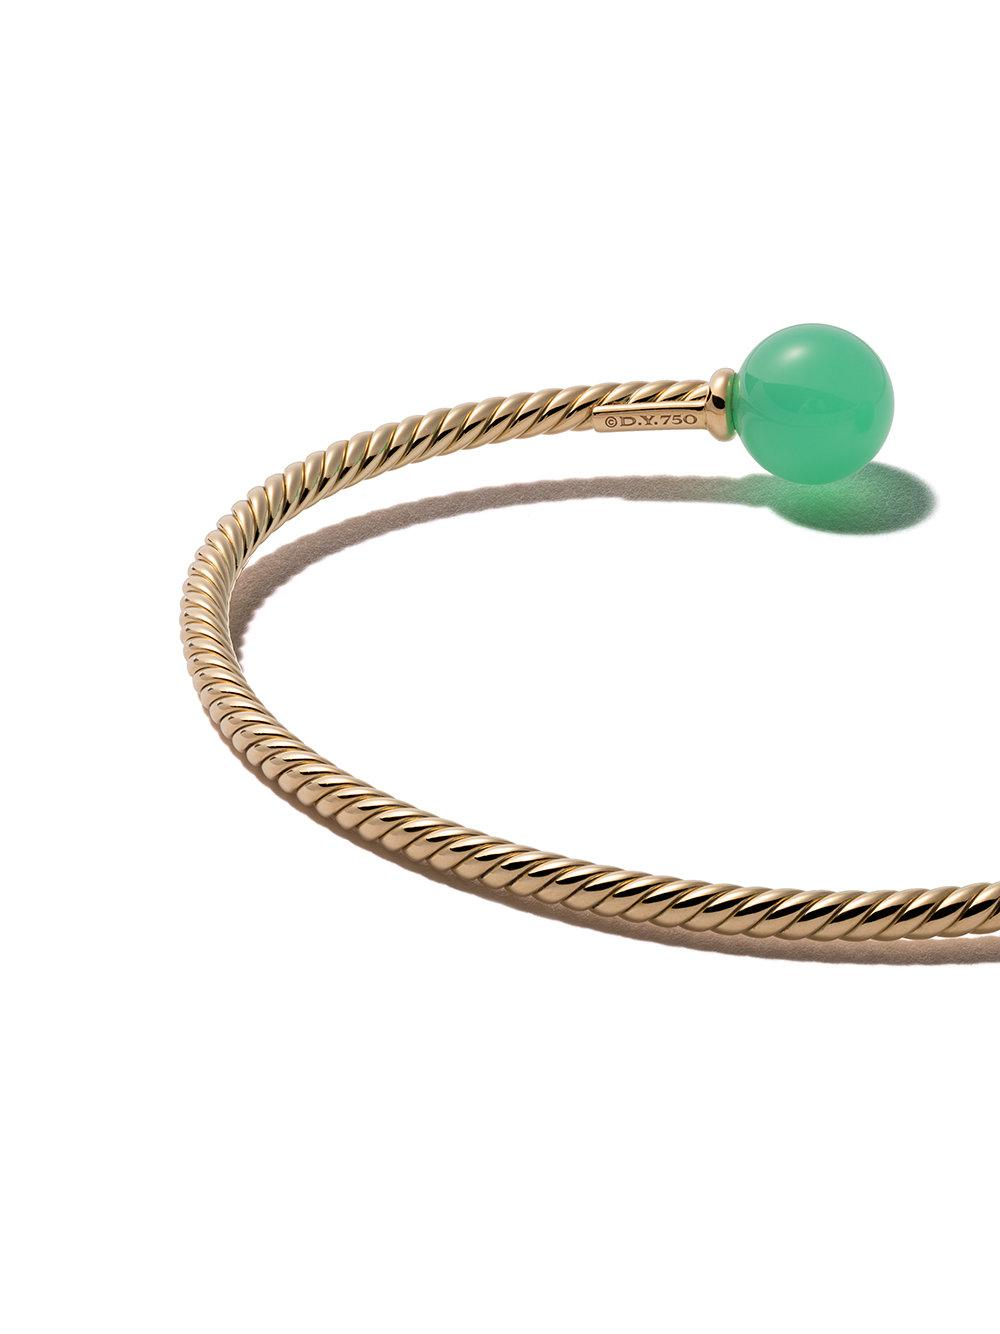 18kt yellow gold Solari chrysoprase bead cuff bracelet - Green David Yurman 2hGYYv3BYY